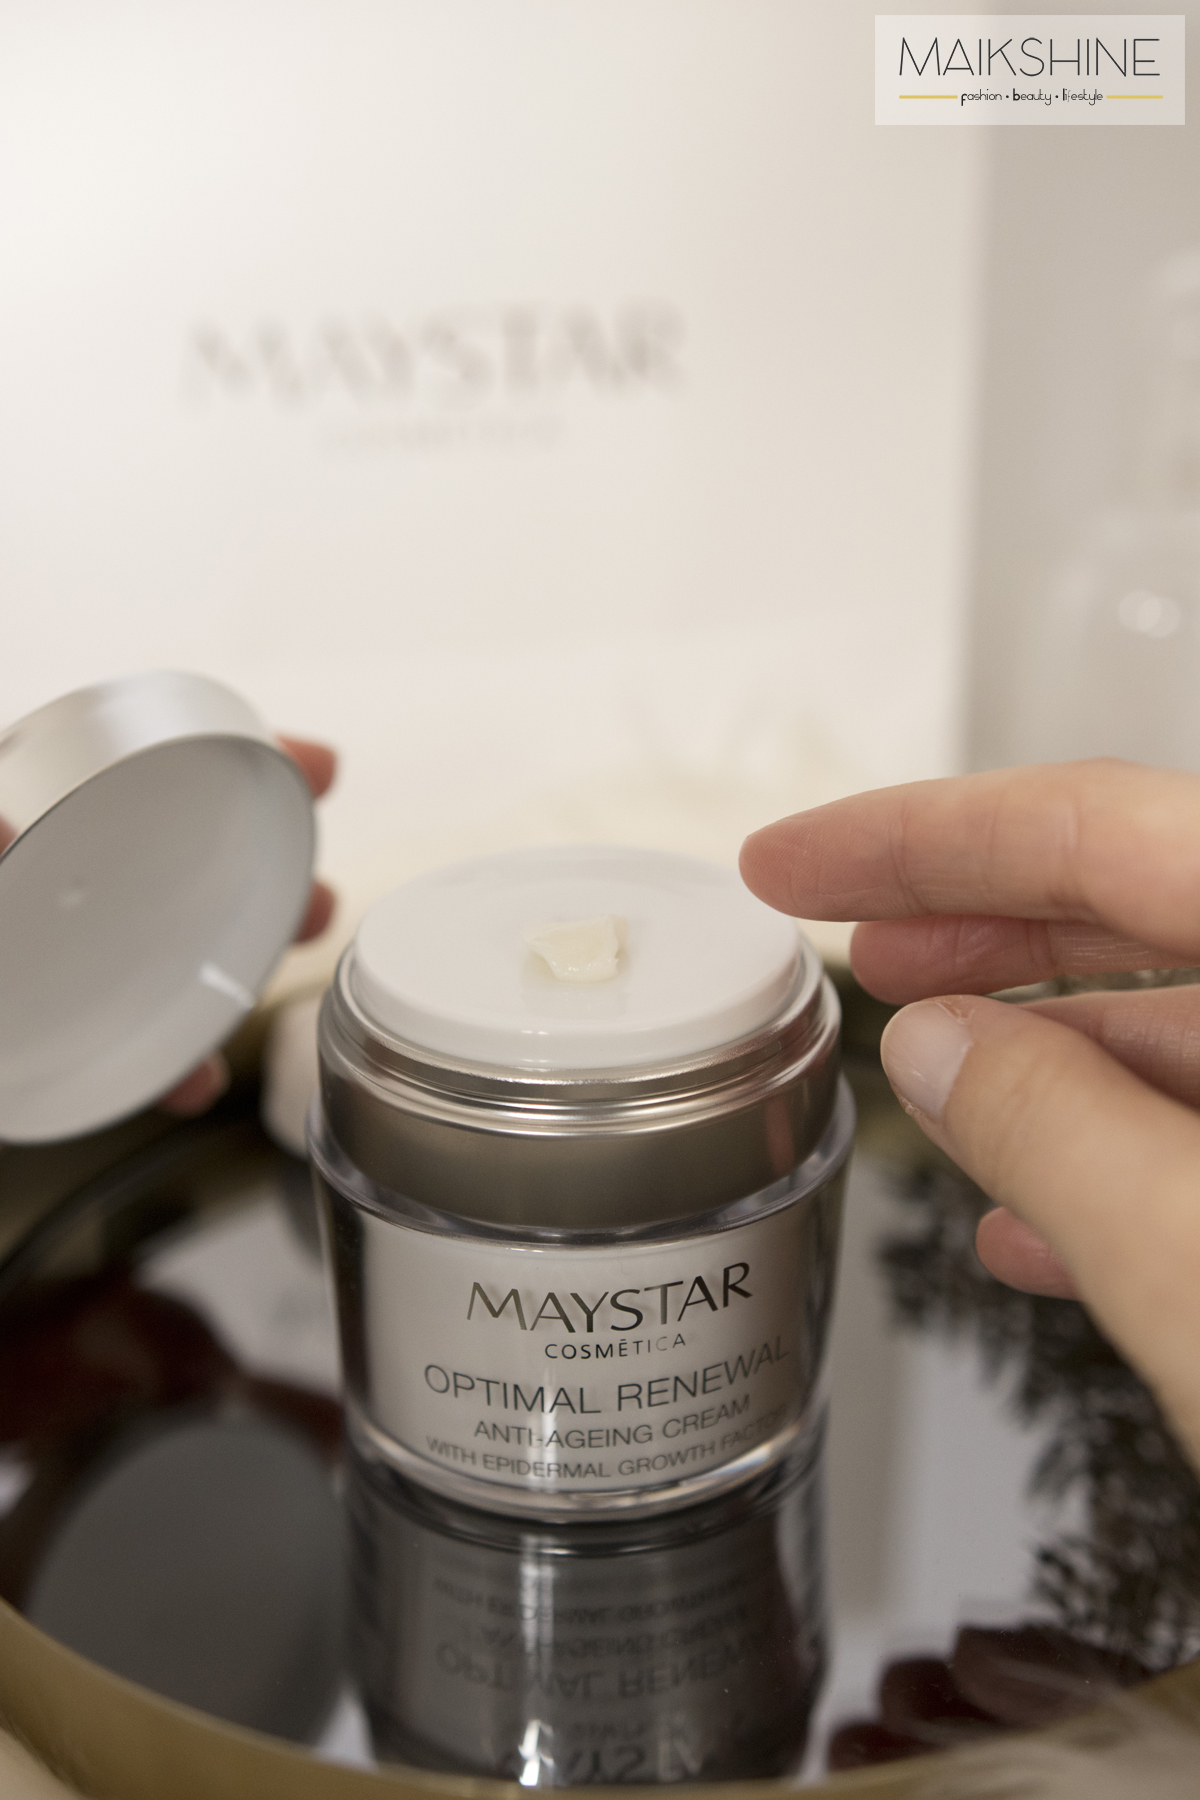 Maystar Optimal Renewal Anti-Ageging Cream